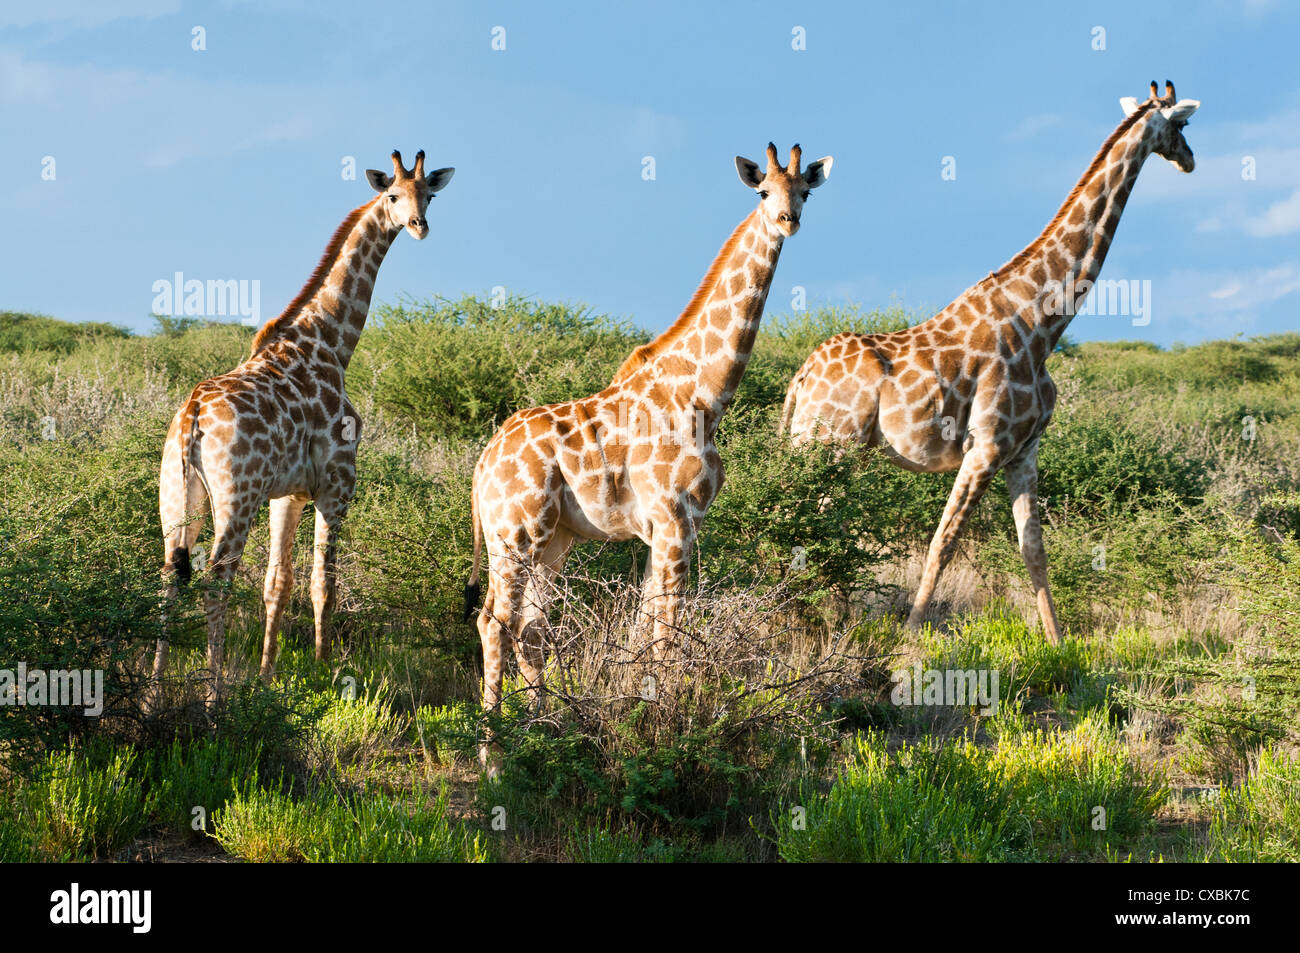 Girafe (Giraffa camelopardalis), Namibie, Afrique Photo Stock